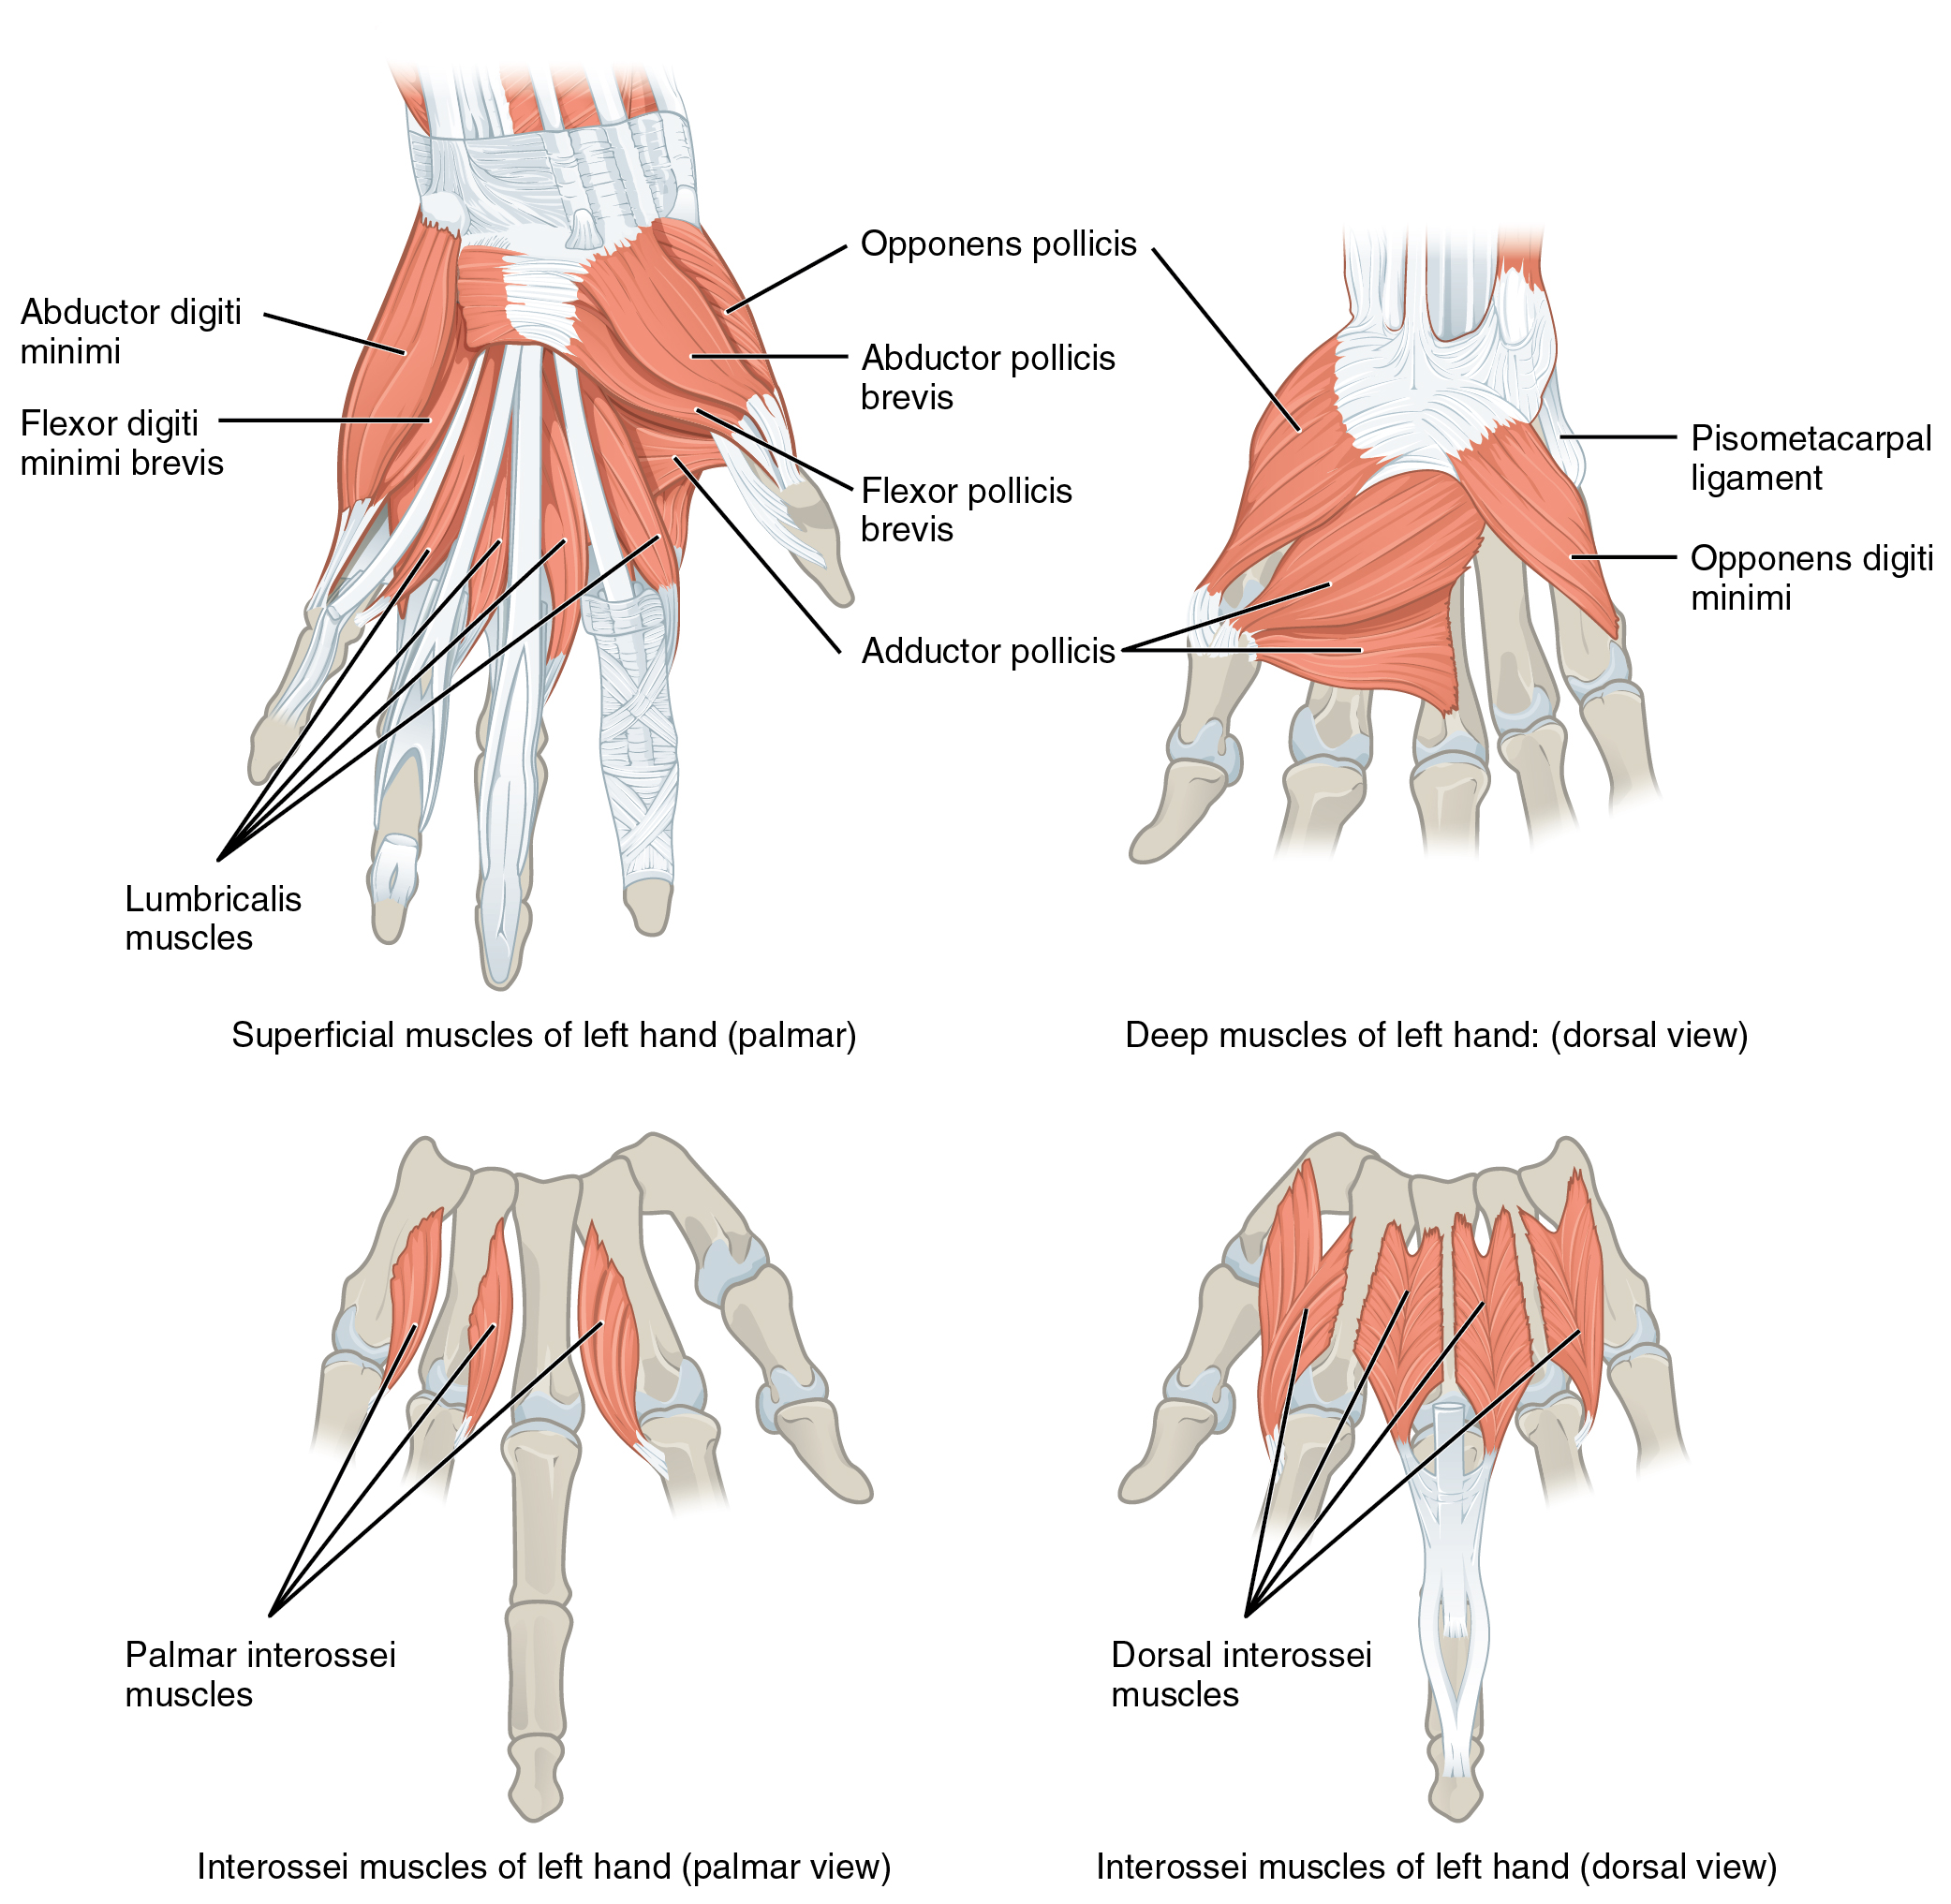 The Role of Morphology of the Thumb in Anthropomorphic Grasping: A ...